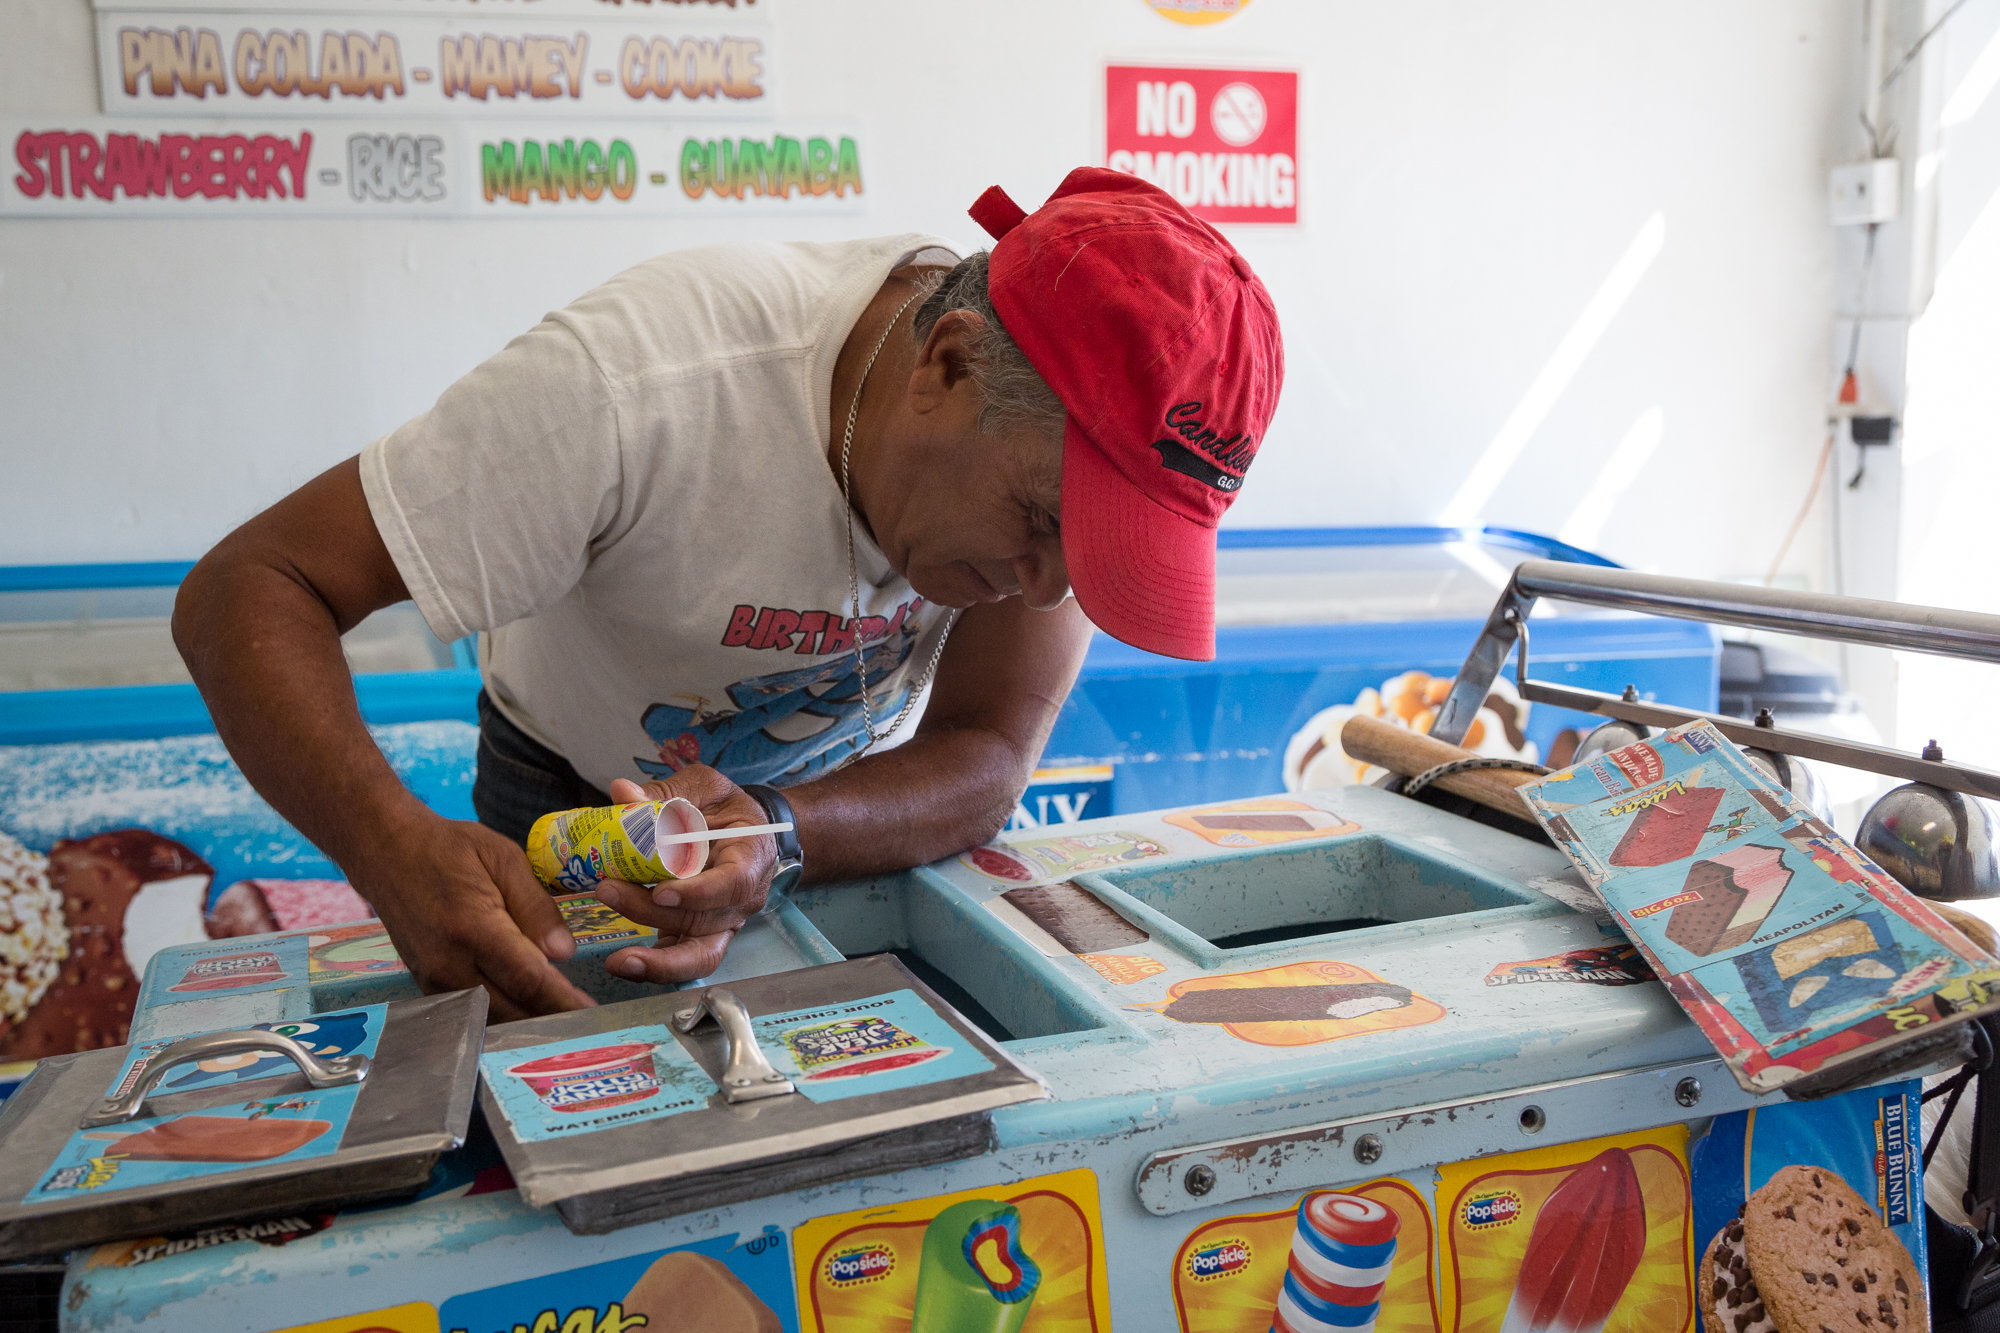 Paletero Victor Cruz can pack hundreds of paletas, ice cream bars and other frozen treats into a paleta cart at La Polar, a paleteria in Chicago's Rogers Park neighborhood. (WBEZ/Shawn Allee)